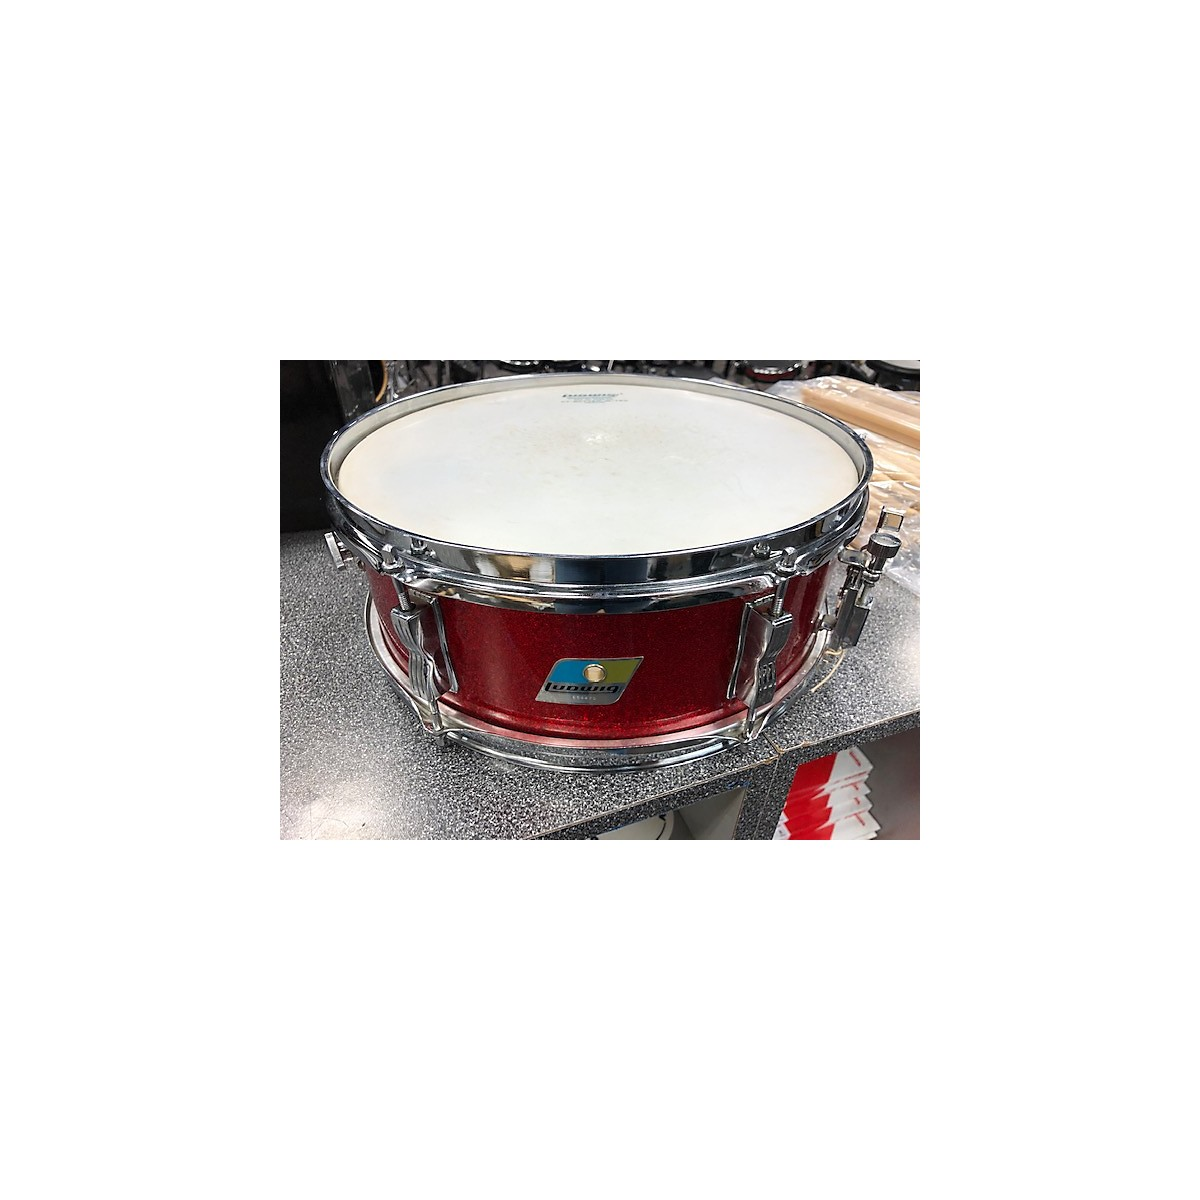 Ludwig 1971 14X5.5 Snare Drum